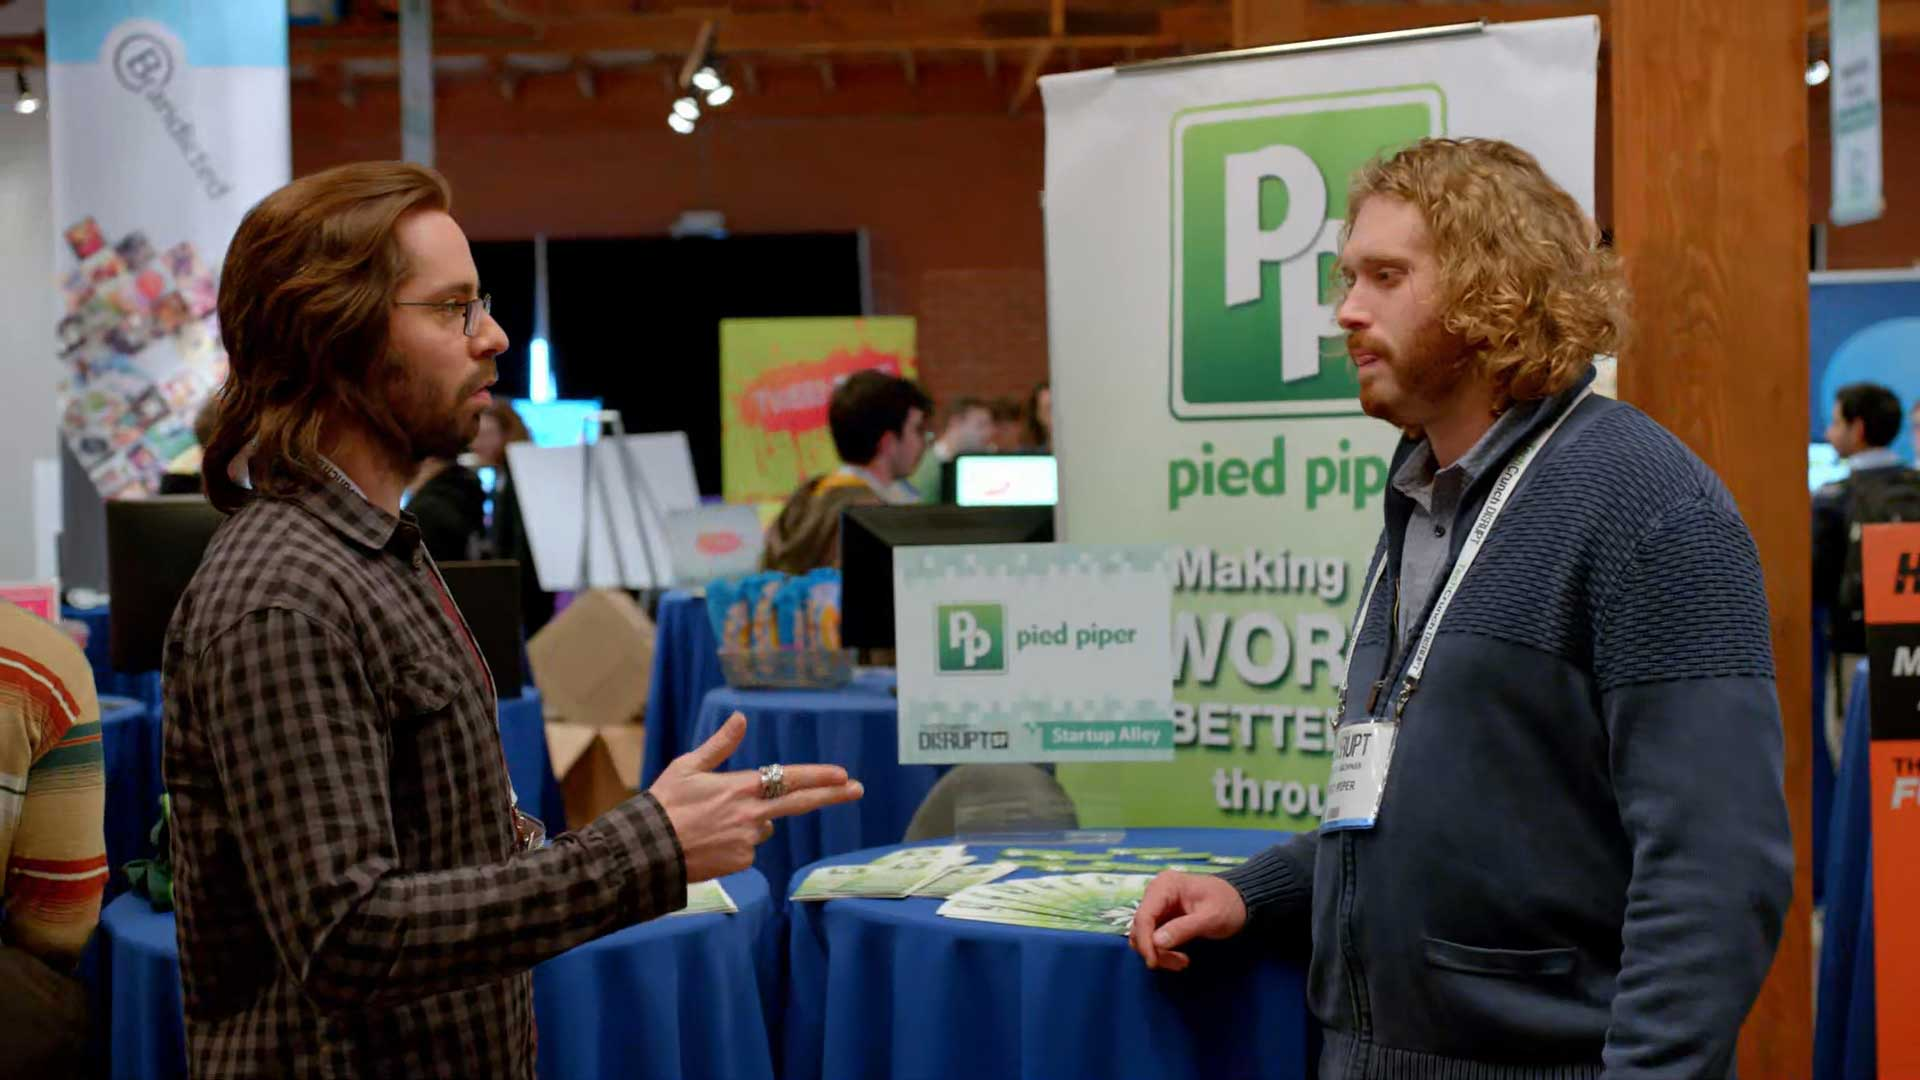 Silicon Valley S1E7 Pied Piper Startup Battlefield